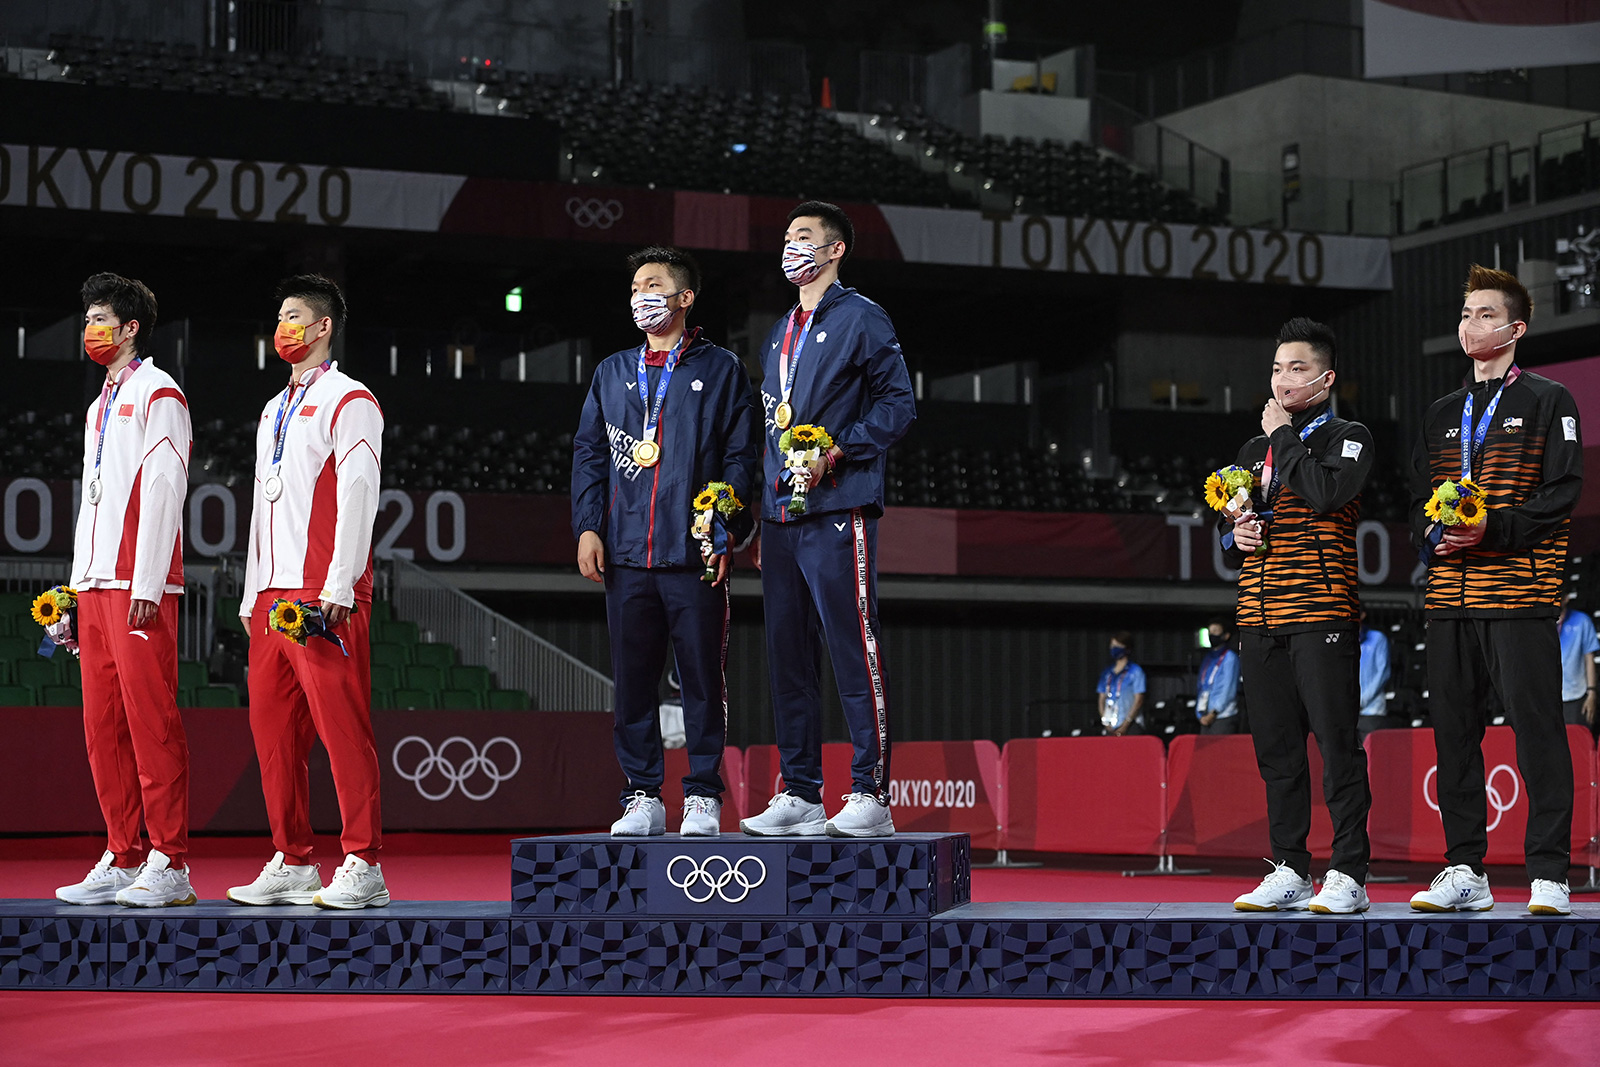 Taiwan's Lee Yang and Wang Chi-lin pose with their men's doubles badminton gold medals next to China's Liu Yuchen and Li Junhui with their silver medals, and Malaysia's Aaron Chia and Soh Wooi Yik with their bronze medals at a ceremony on Saturday.